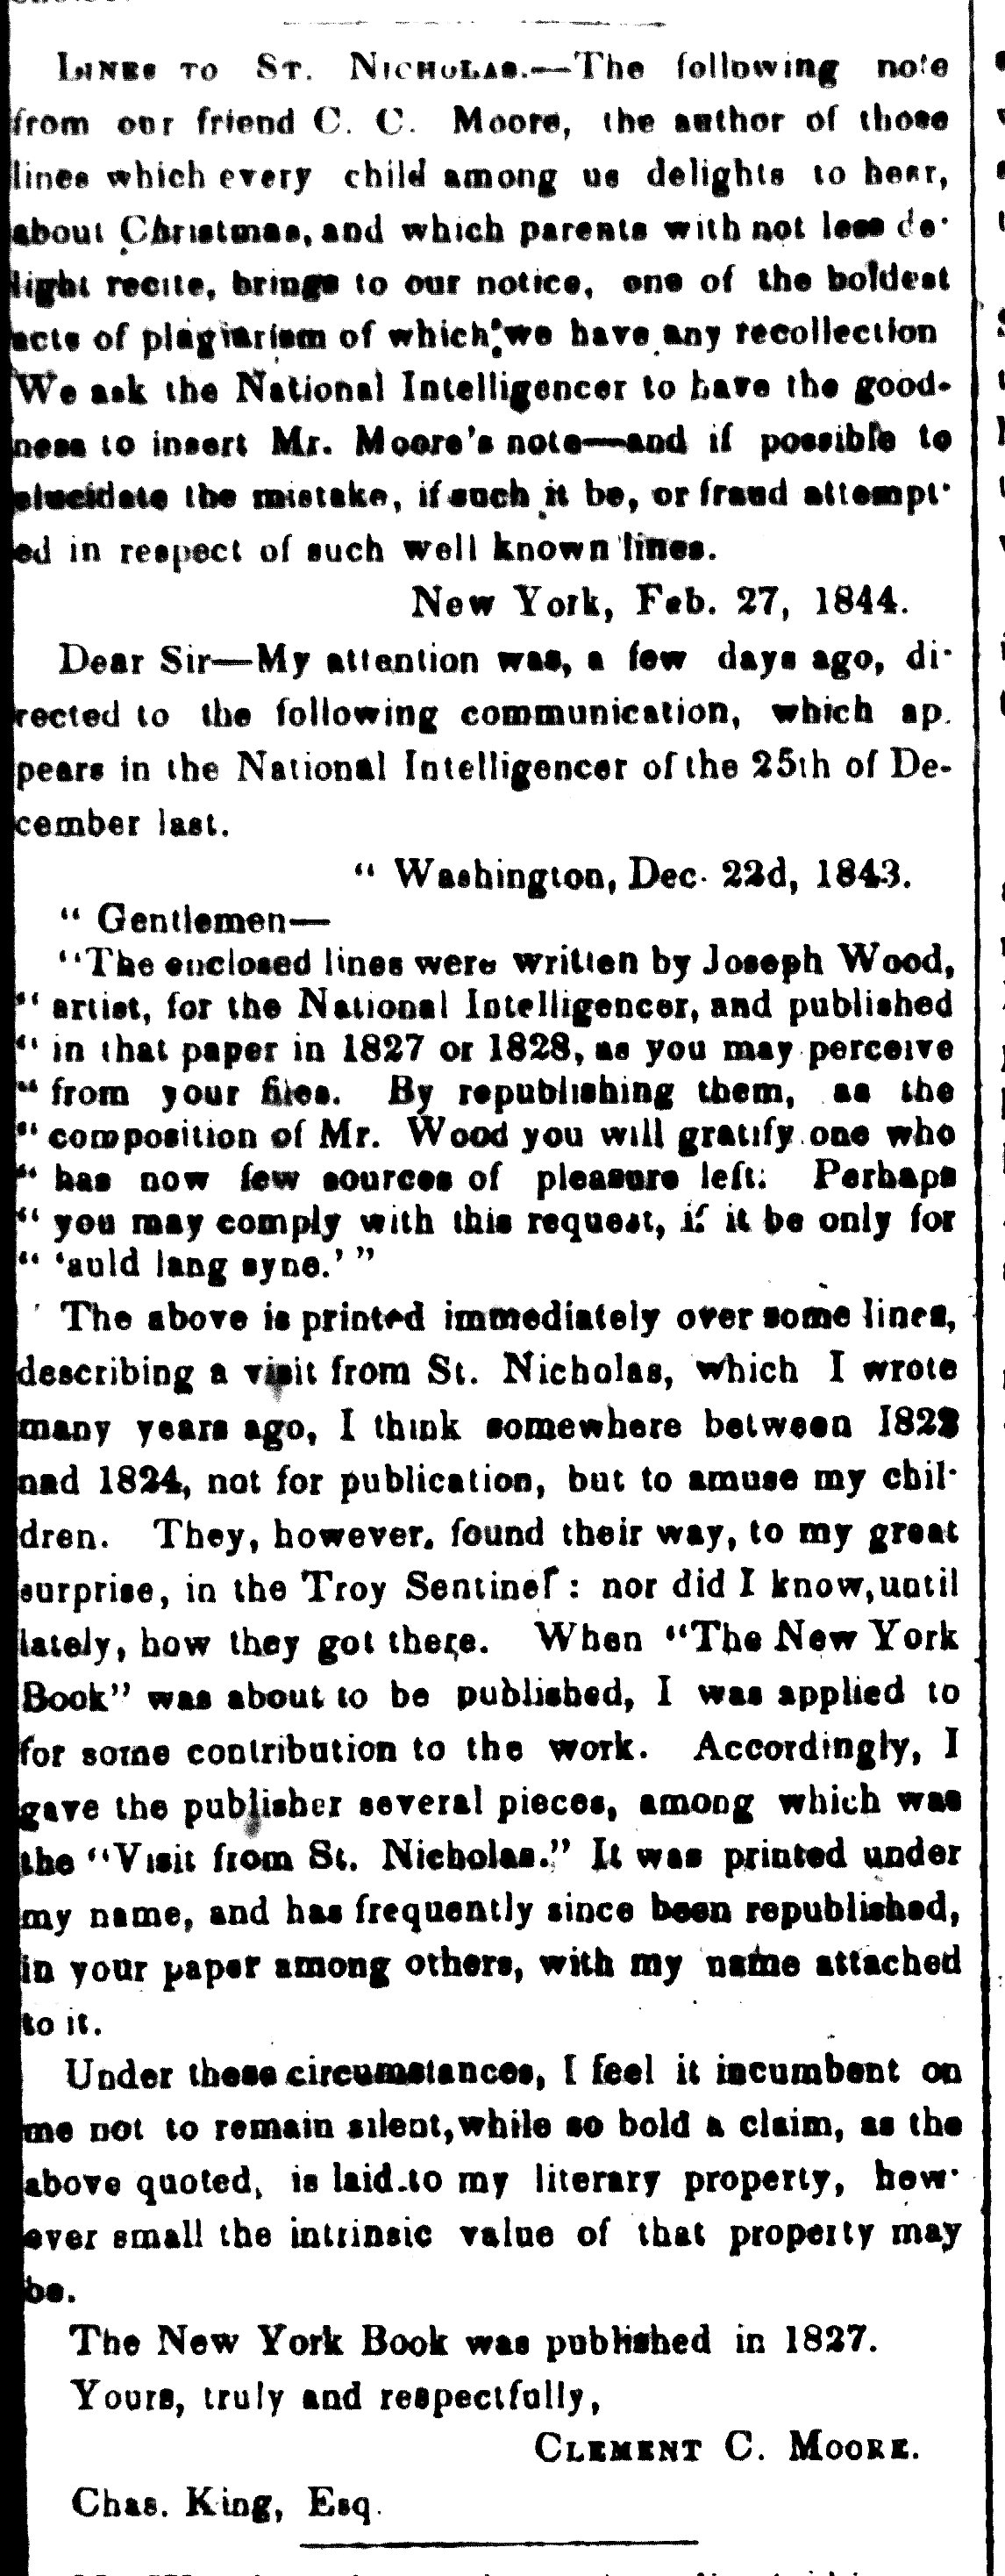 Clement C. Moore's published letter about his authorship